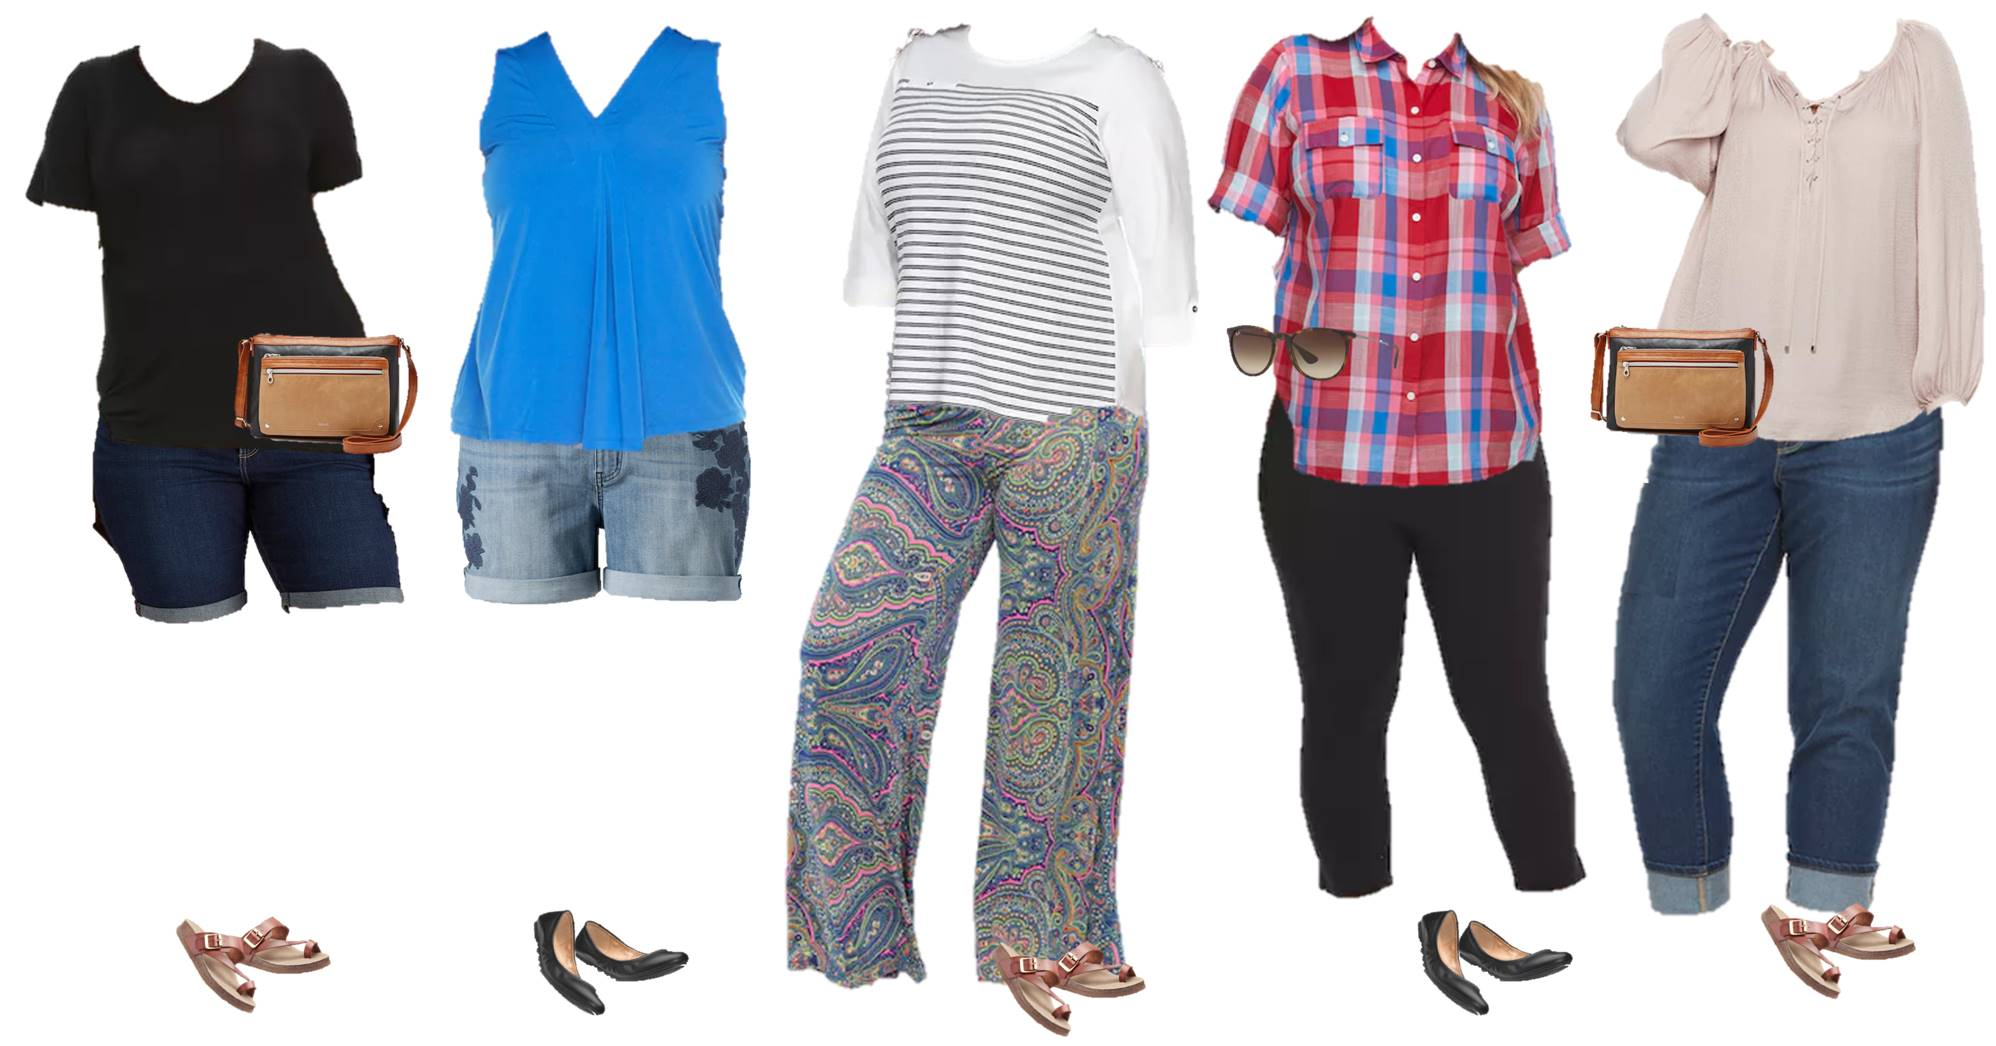 5eff7bca4e1 Plus-Size Capsule Wardrobe for Spring and Summer